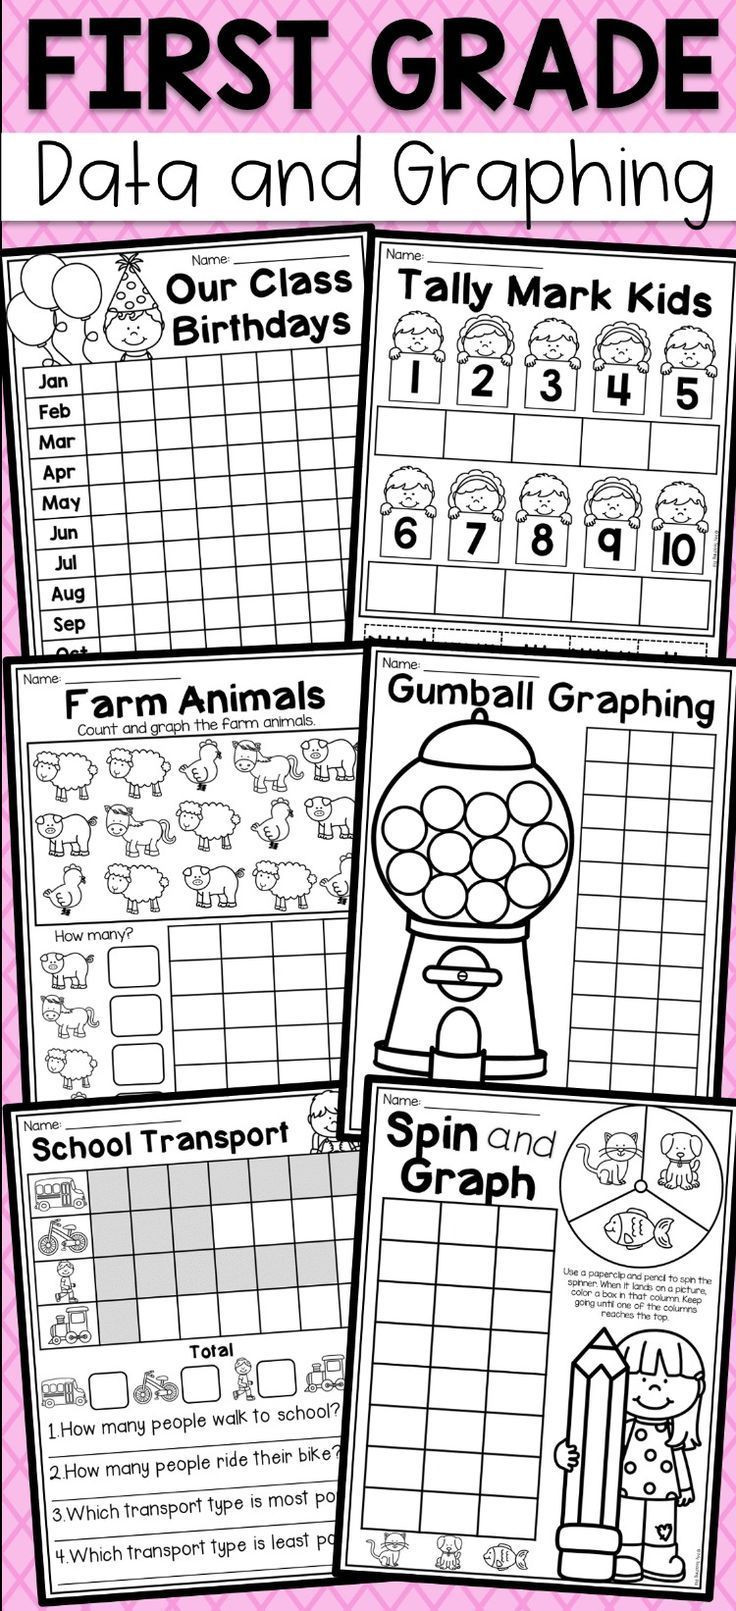 First Grade Graphing Worksheets Pin On Additions